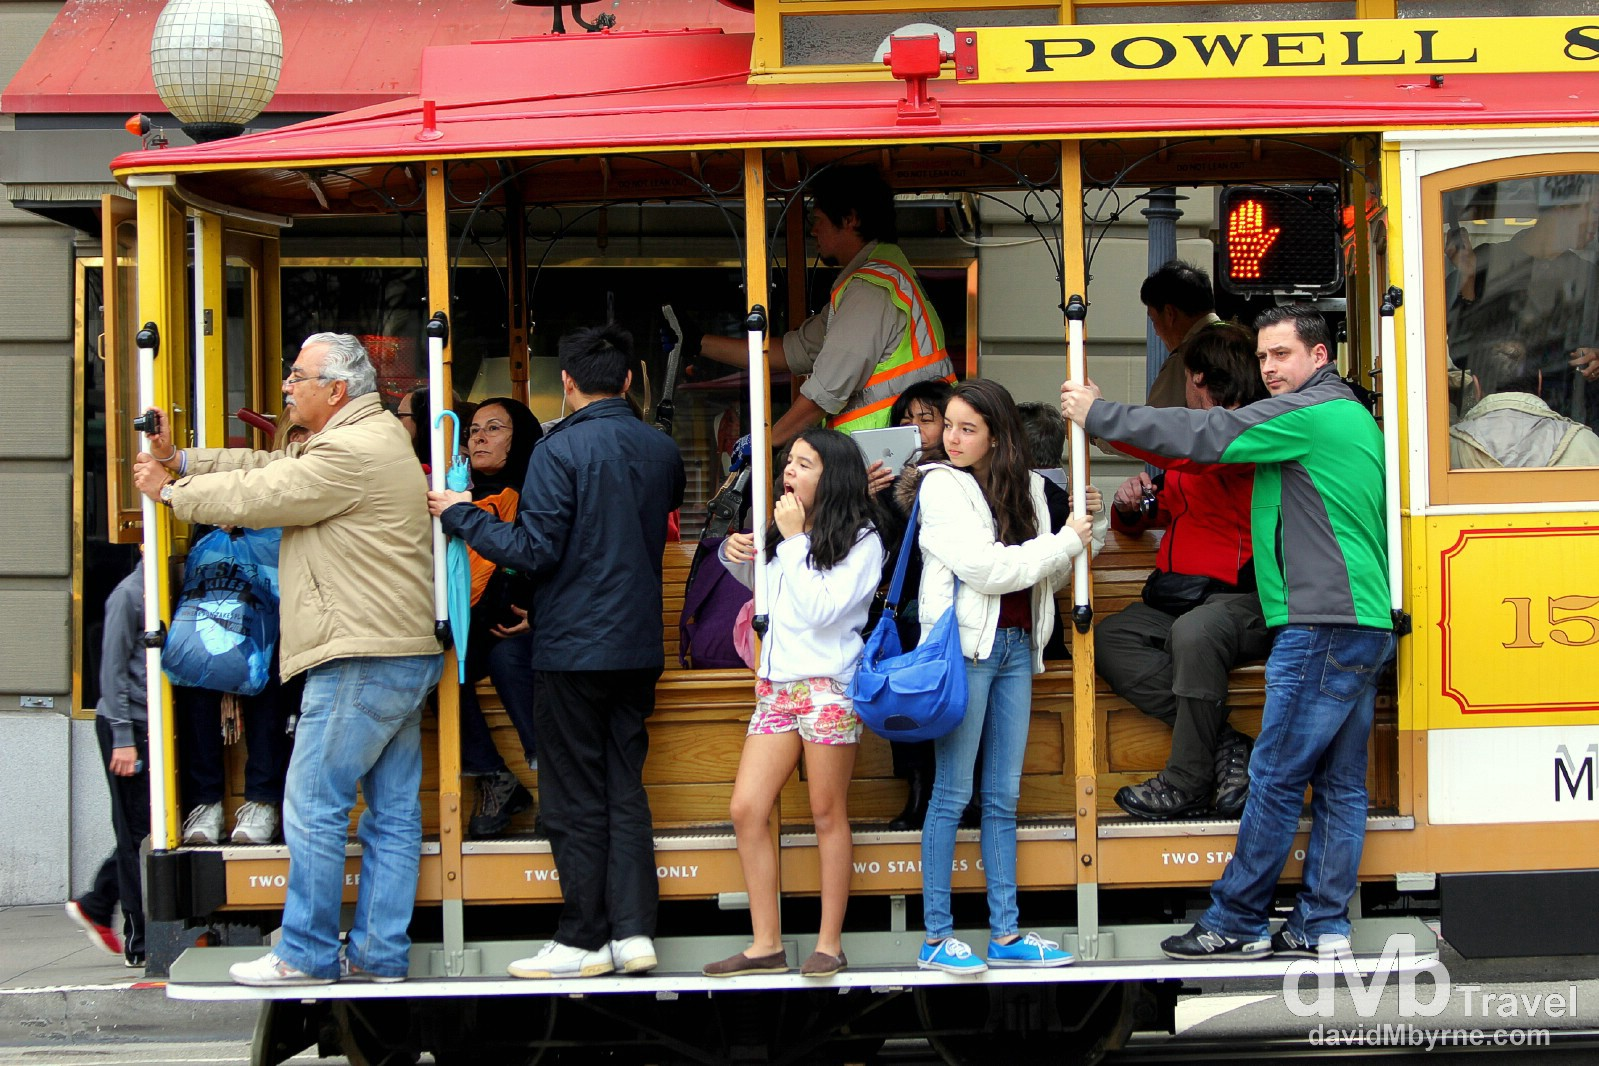 Riding the tram on Powell Street, San Francisco, California, USA. March 31st 2013.